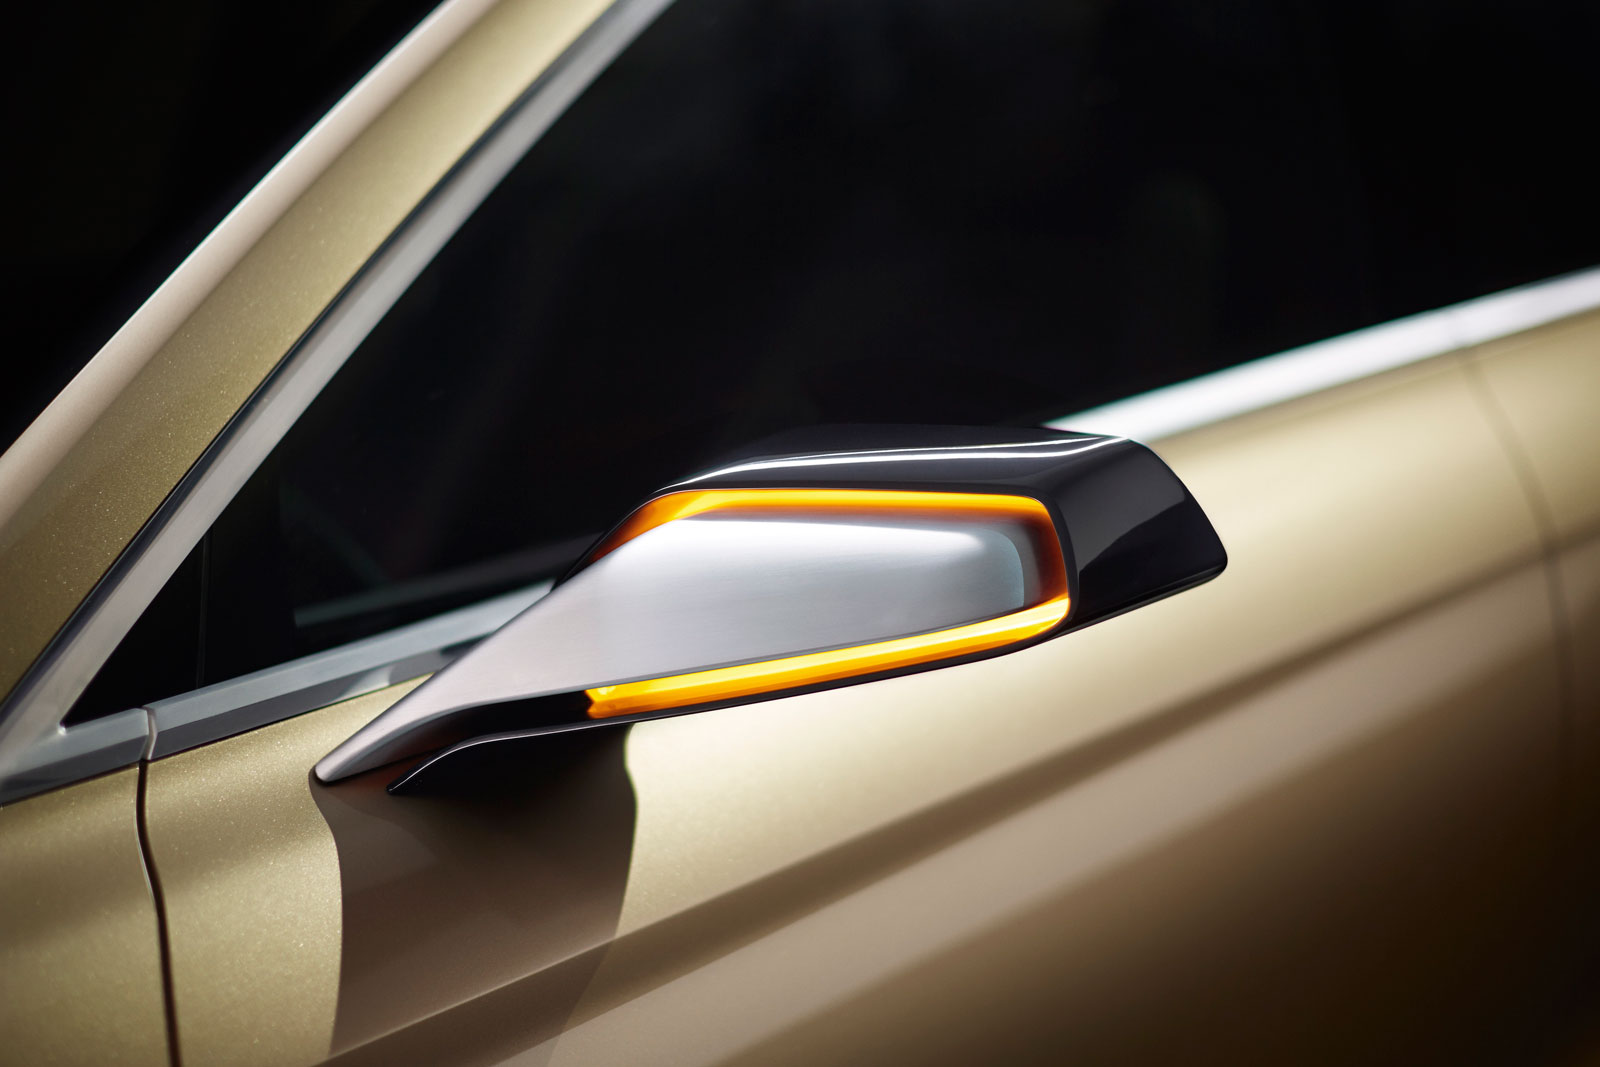 http://www.carbodydesign.com/media/2014/05/Lincoln-MKX-Concept-Side-Mirror-01.jpg